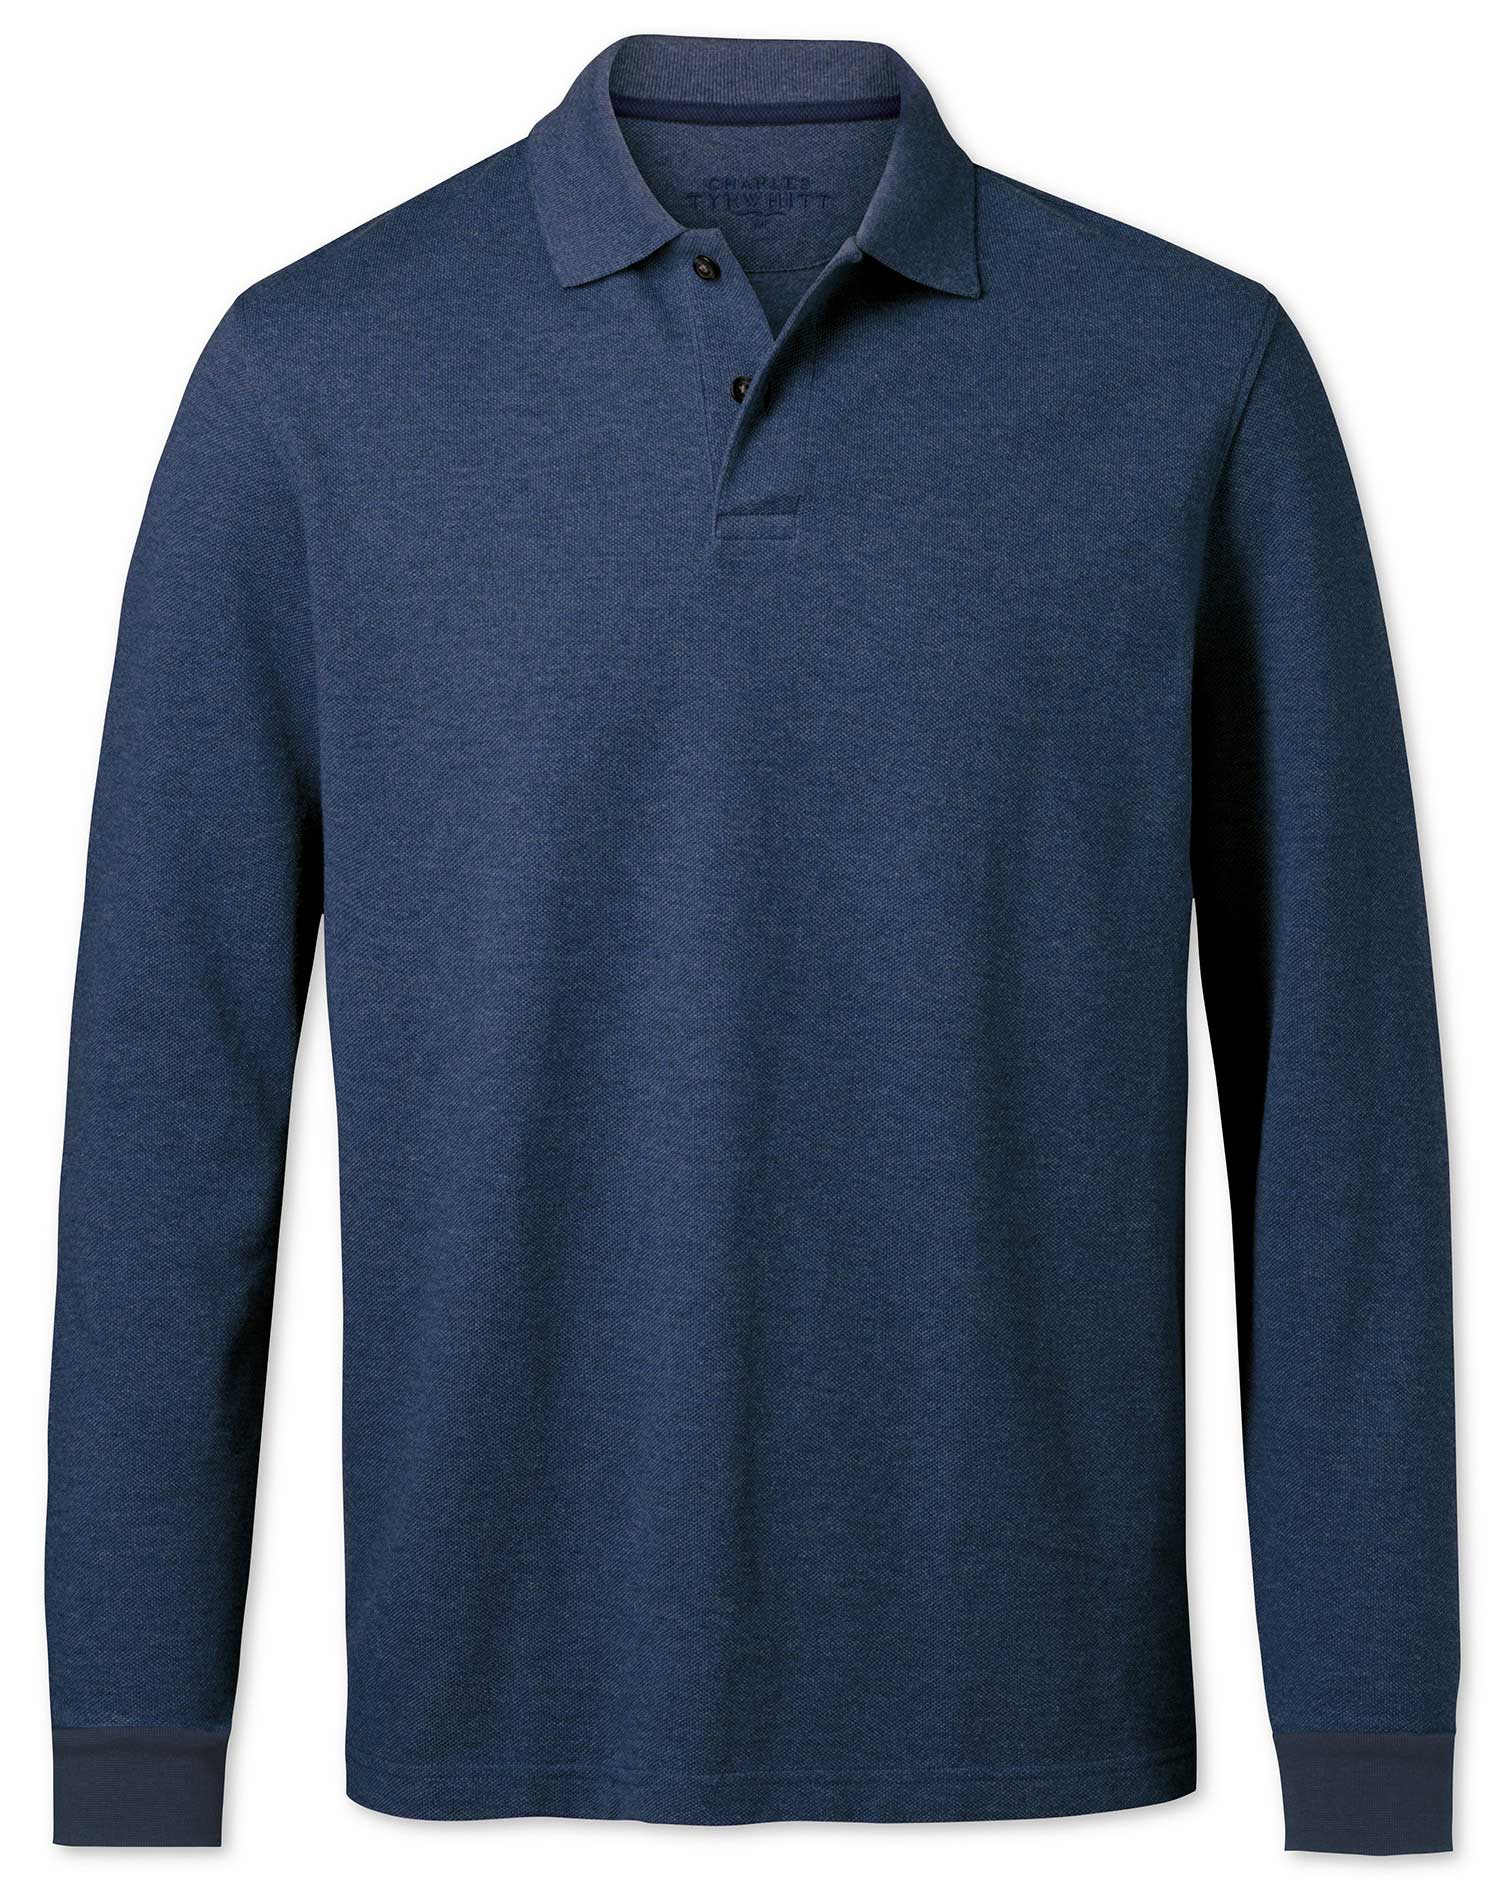 Indigo Pique Long Sleeve Cotton Polo Size Large by Charles Tyrwhitt